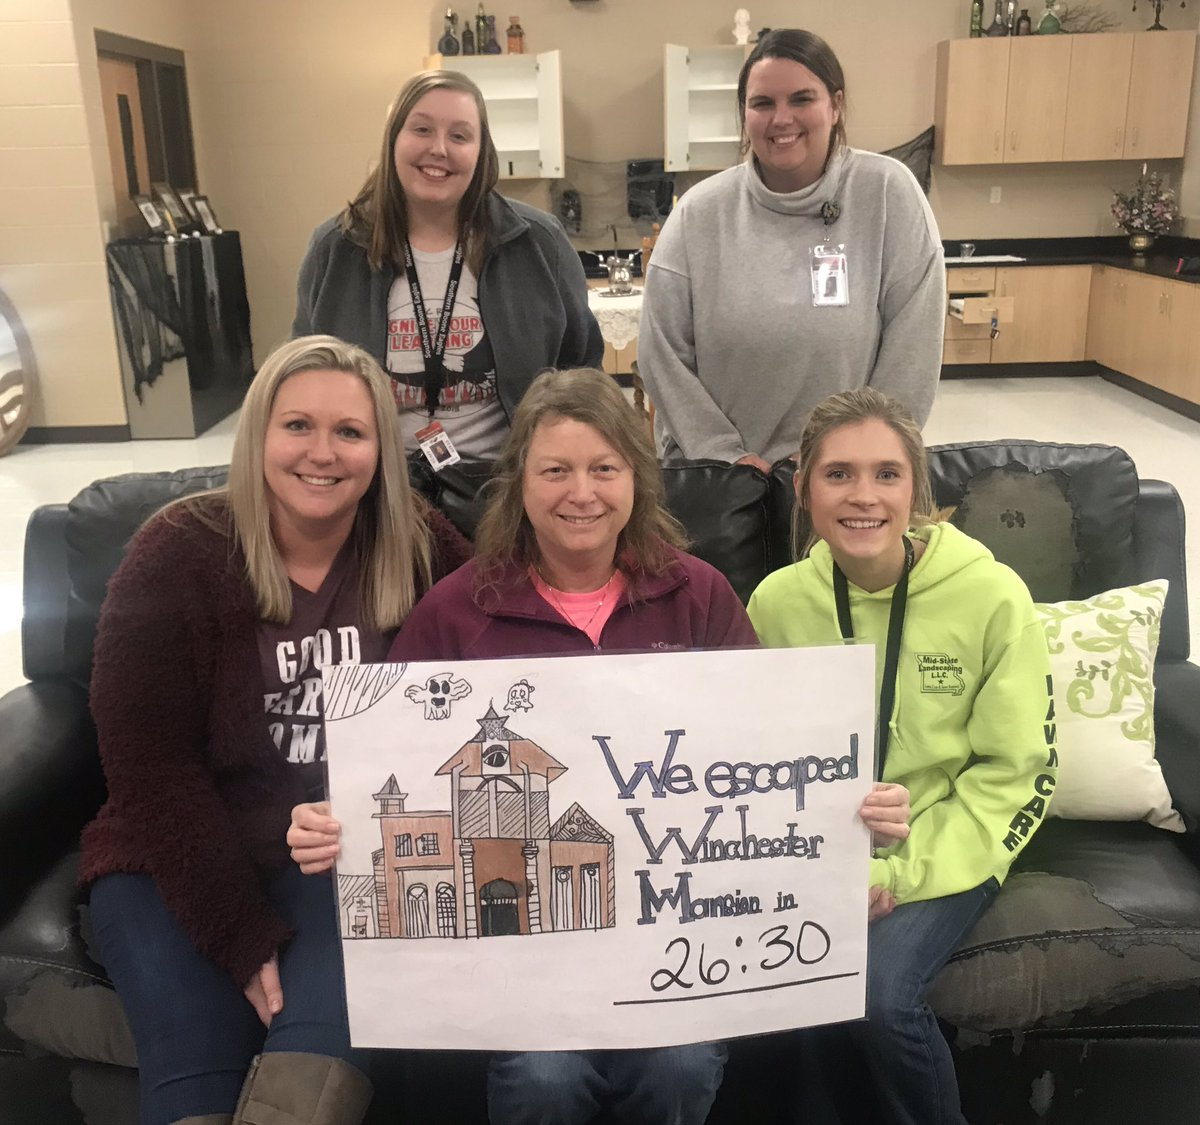 Night #2 of our 5th grade service learning project....3 out of 4 groups escaped!! And all of them with escaped with only 5 minutes or less left!! #WinchesterMansion #cityofrefuge #5thgrade @BeulahRalphElem @MsJenBrownBEU @Ms_Pattonbeu @QImler @jstarke9